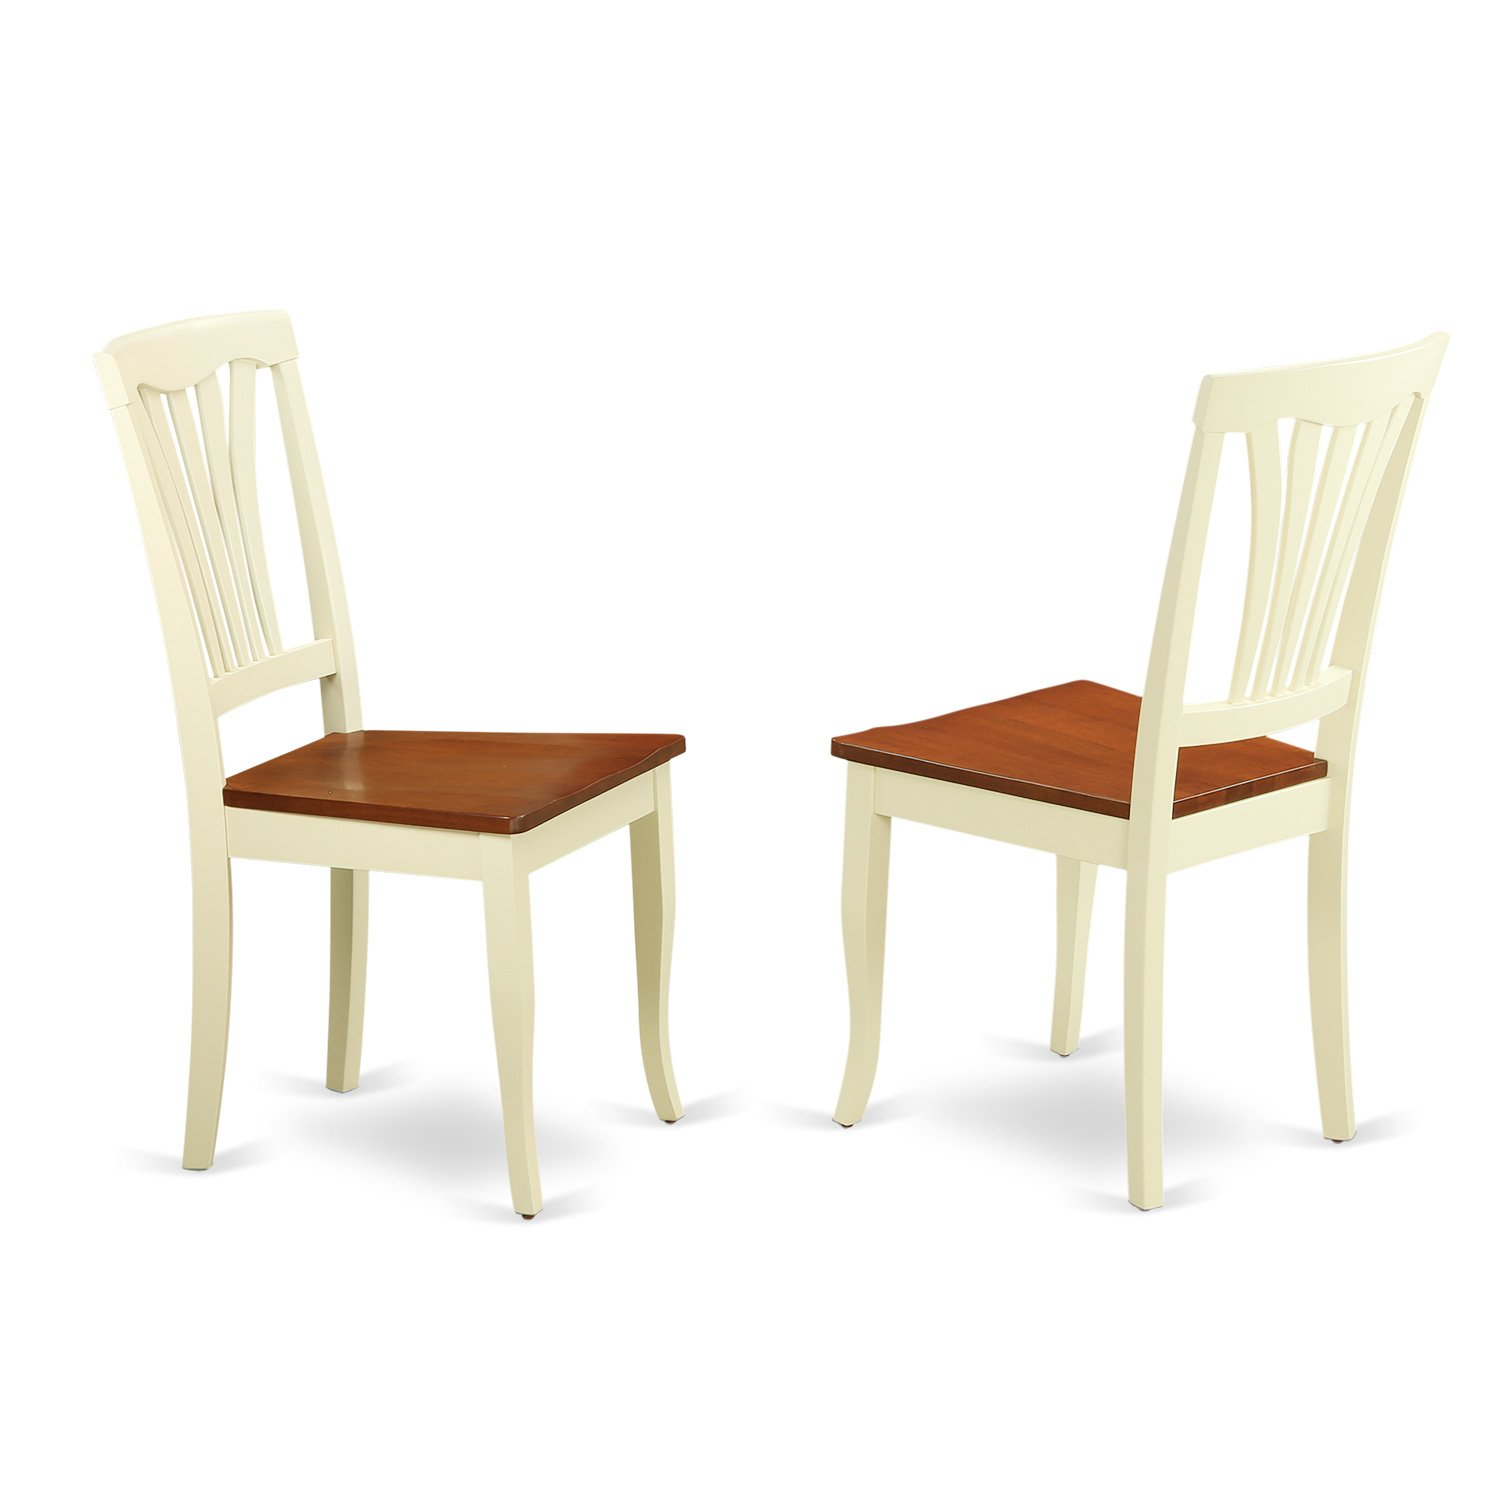 East West Furniture AVC-WHI-W Dining Chair Set with Wood Seat, Buttermilk/Cherry Finish, Set of 2 by East West Furniture (Image #1)